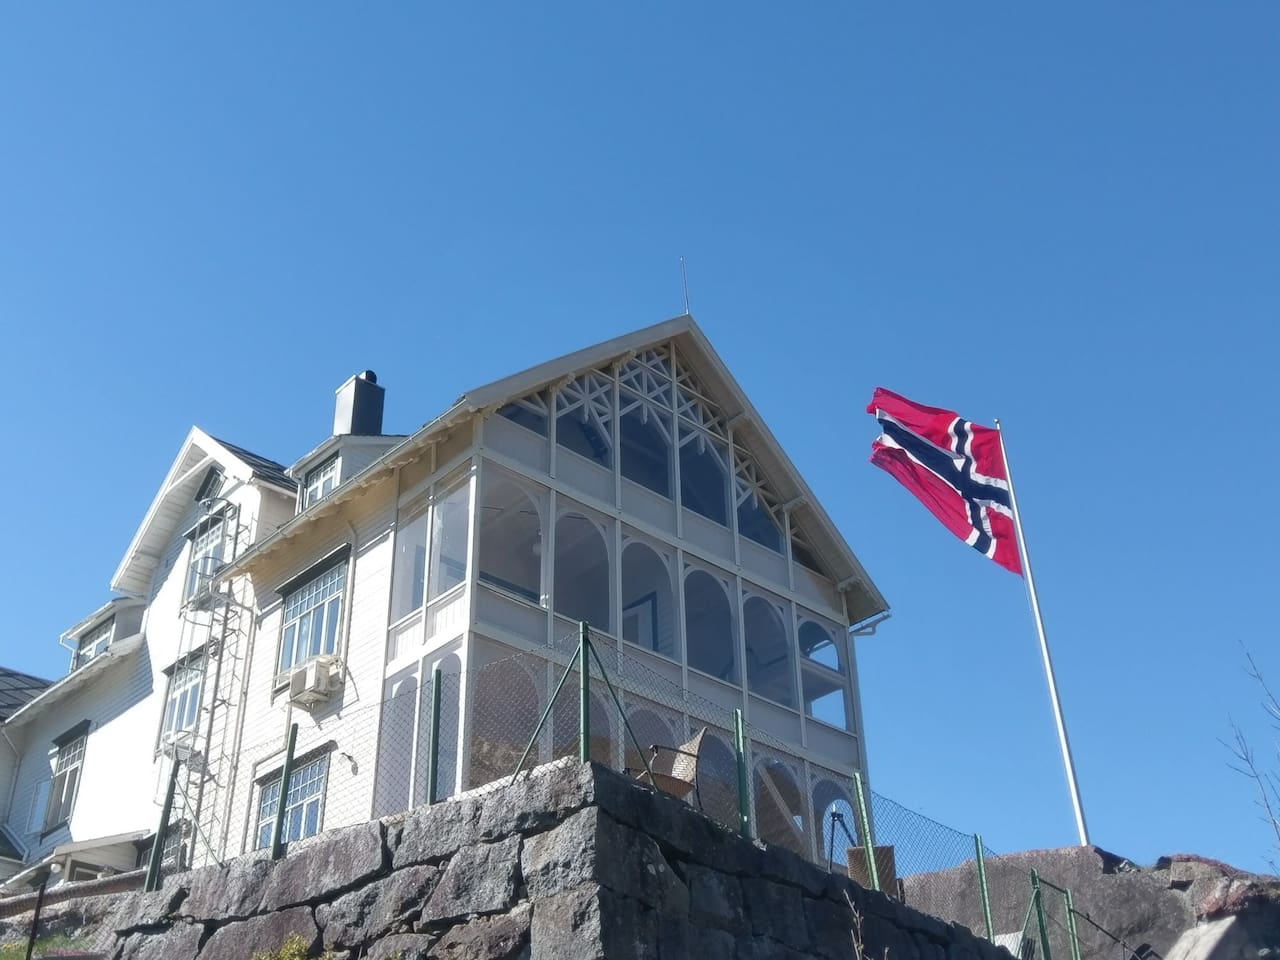 The big historical house on the top of the hill. Vikinghaug apartments.